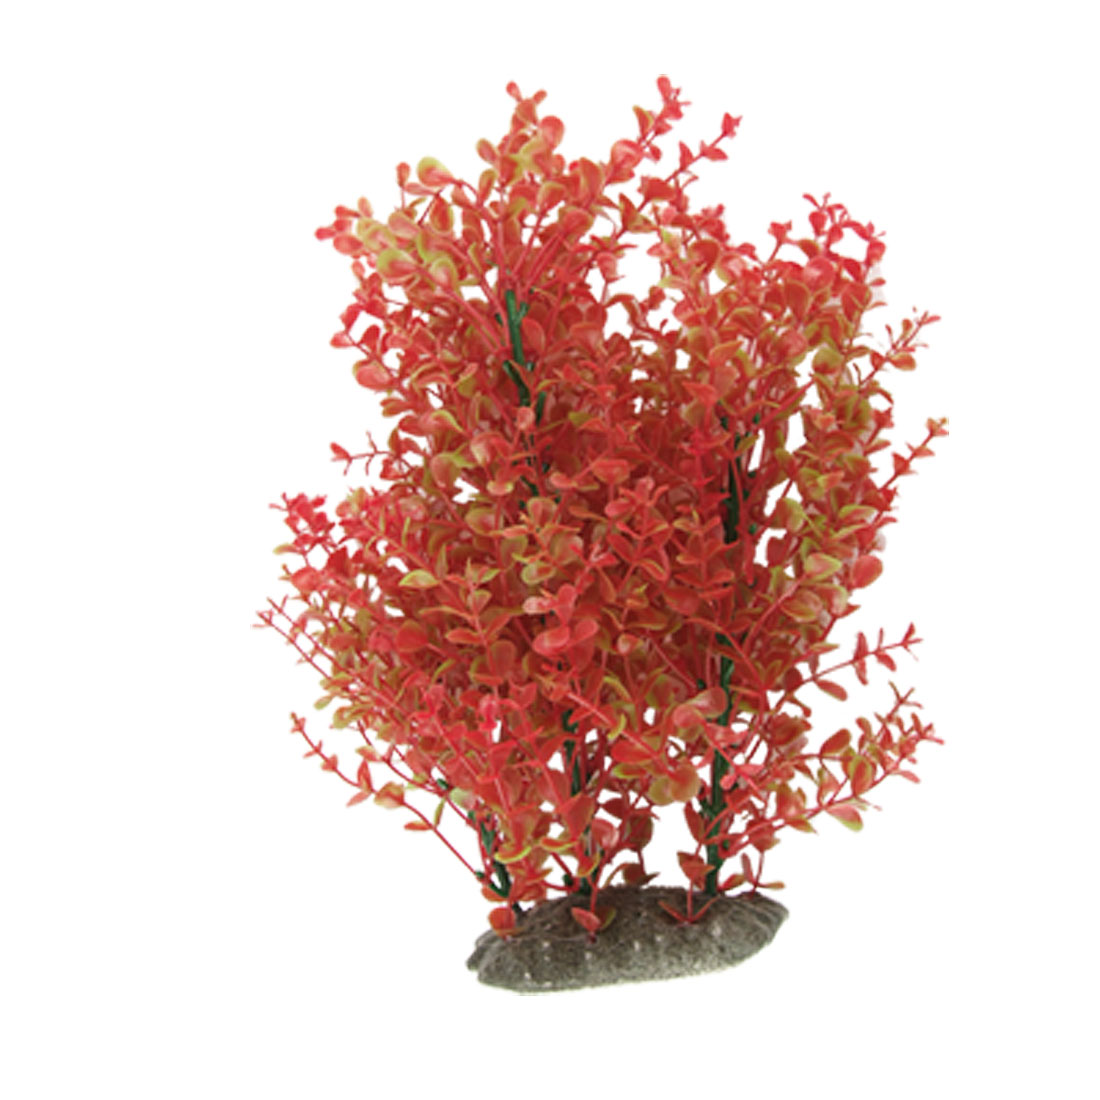 Fish-Tank-Artificial-Plastic-Plant-Ornament-Green-Red-Uvjif